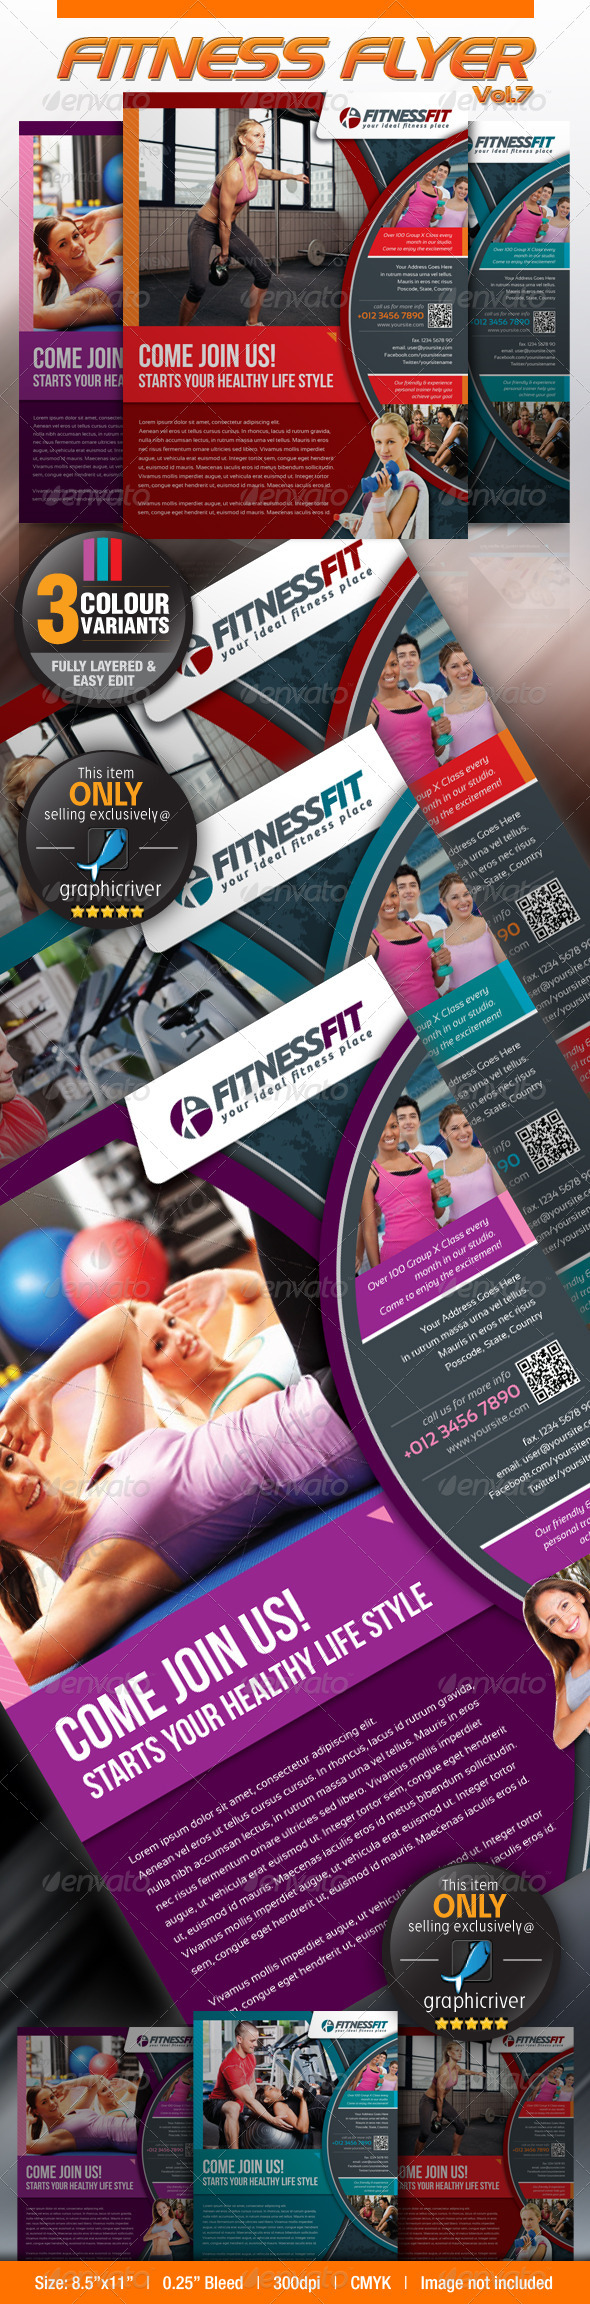 GraphicRiver Fitness Flyer Vol.7 3728118